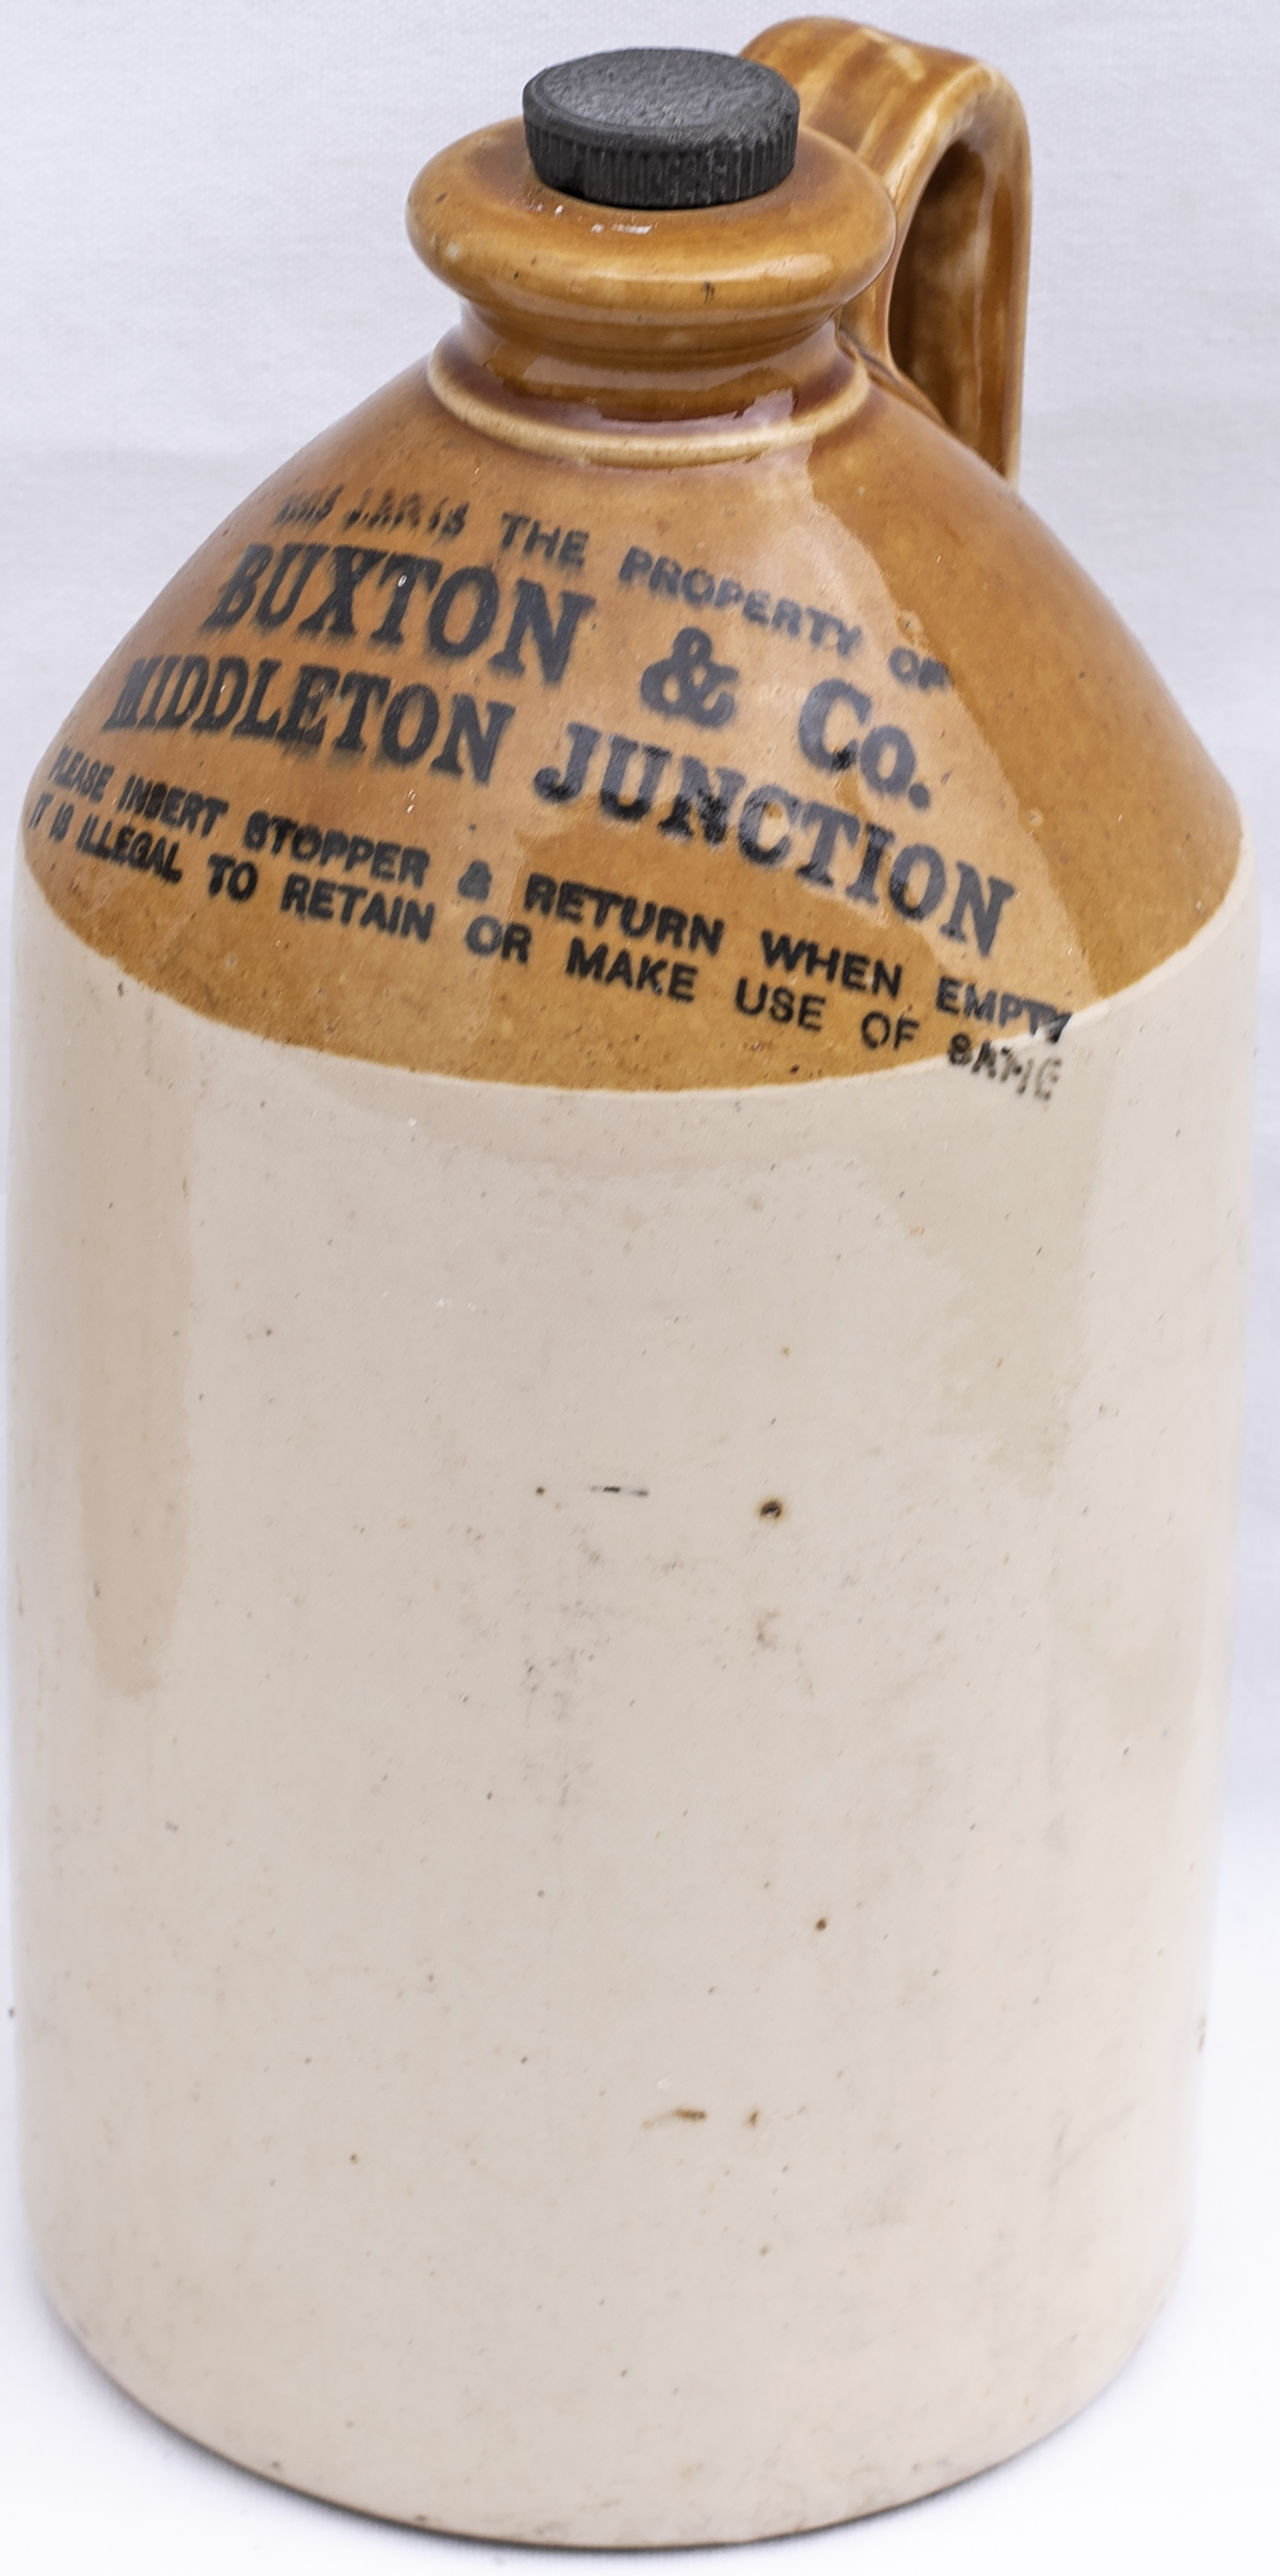 Stoneware flagon BUXTON & Co MIDDLETON JUNCTION embossed with makers name PRICE BRISTOL. In